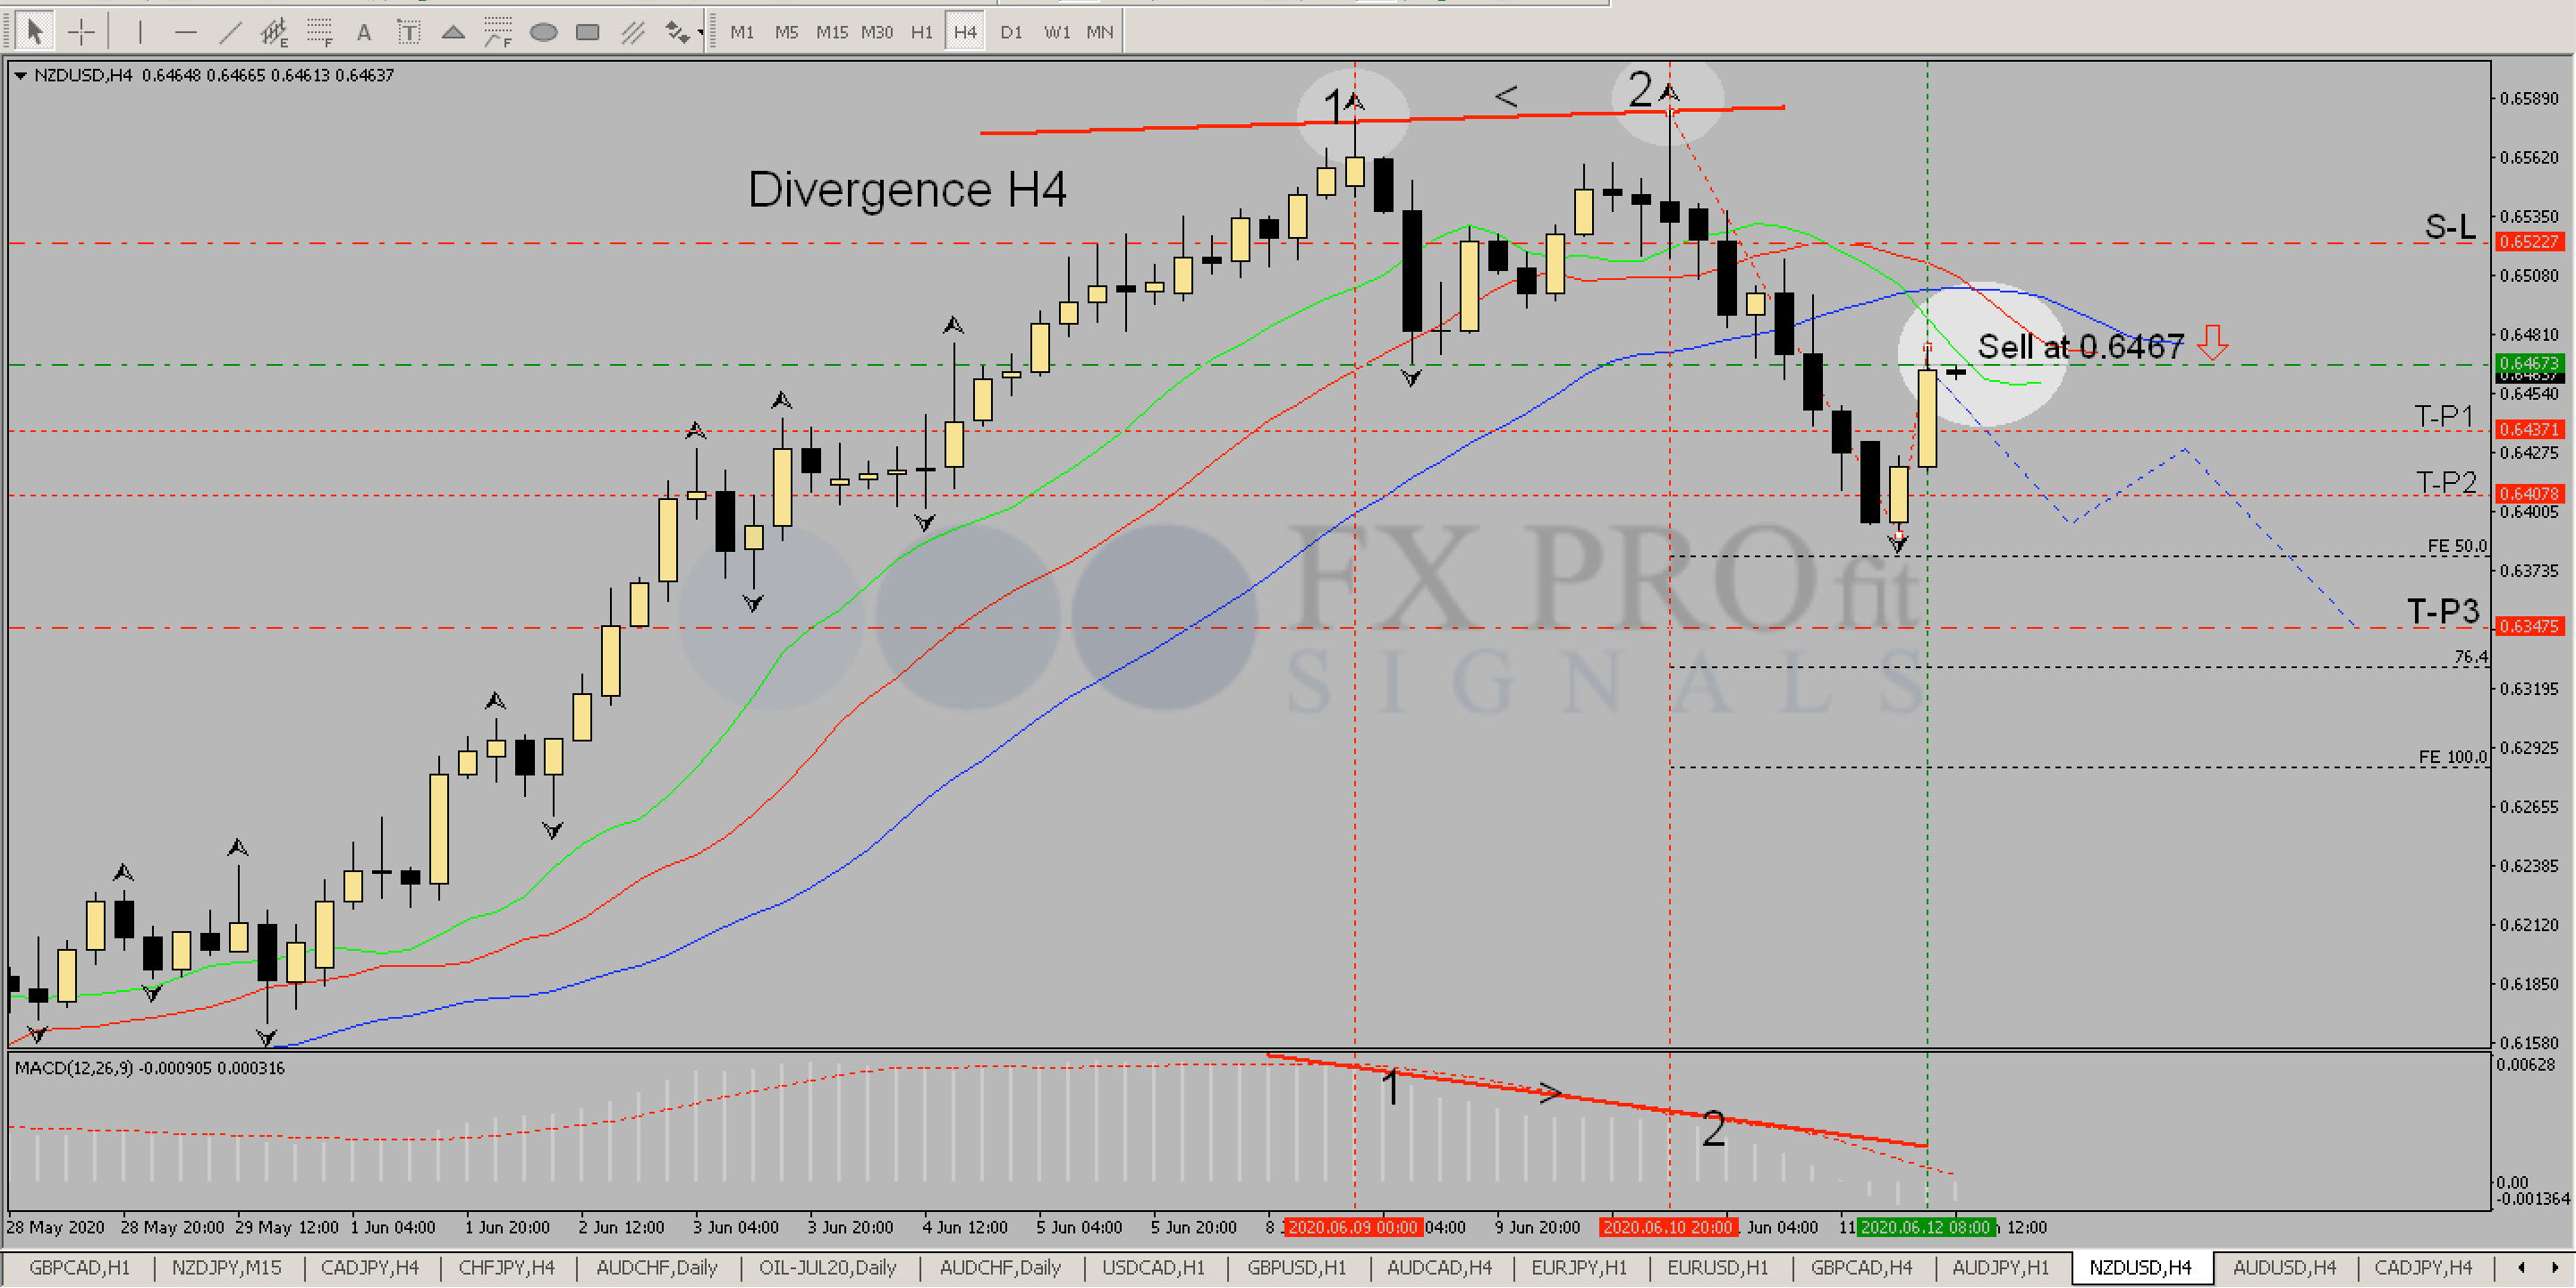 Nzd/usd forex signals phatradirect investment property